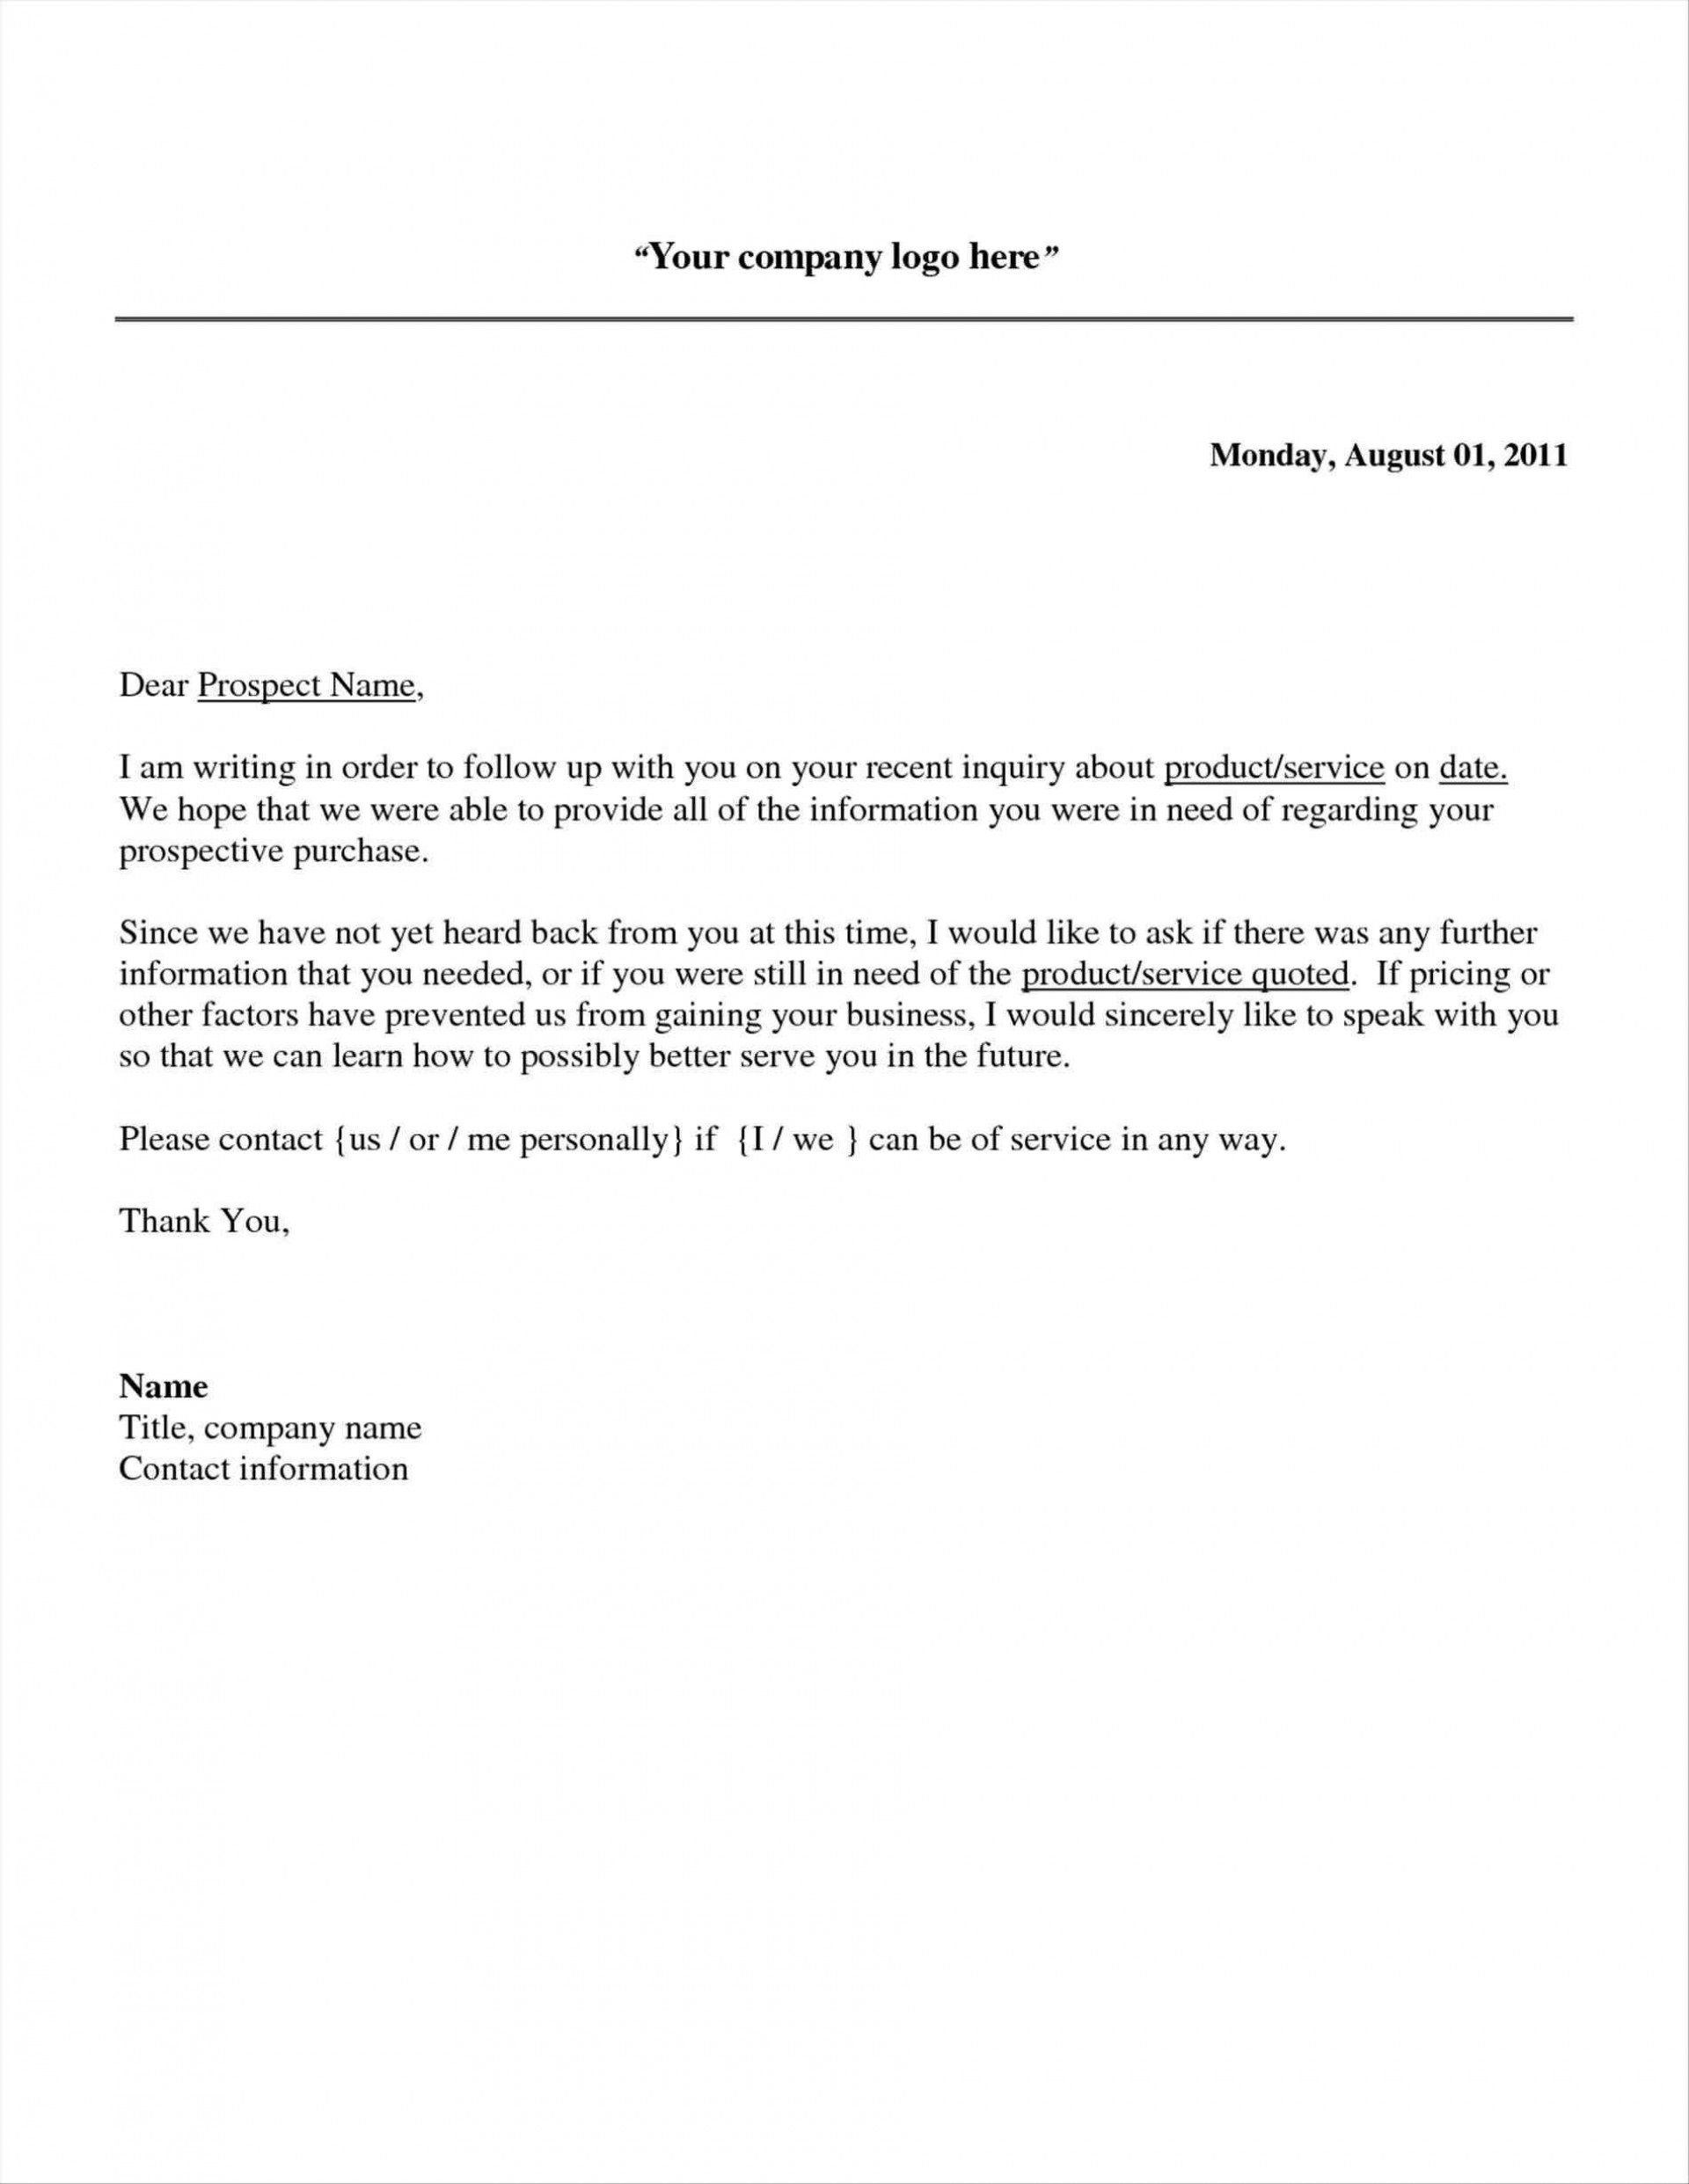 006 Wondrou Follow Up Email Letter For Job Application Picture  Template Example After Writing AFull